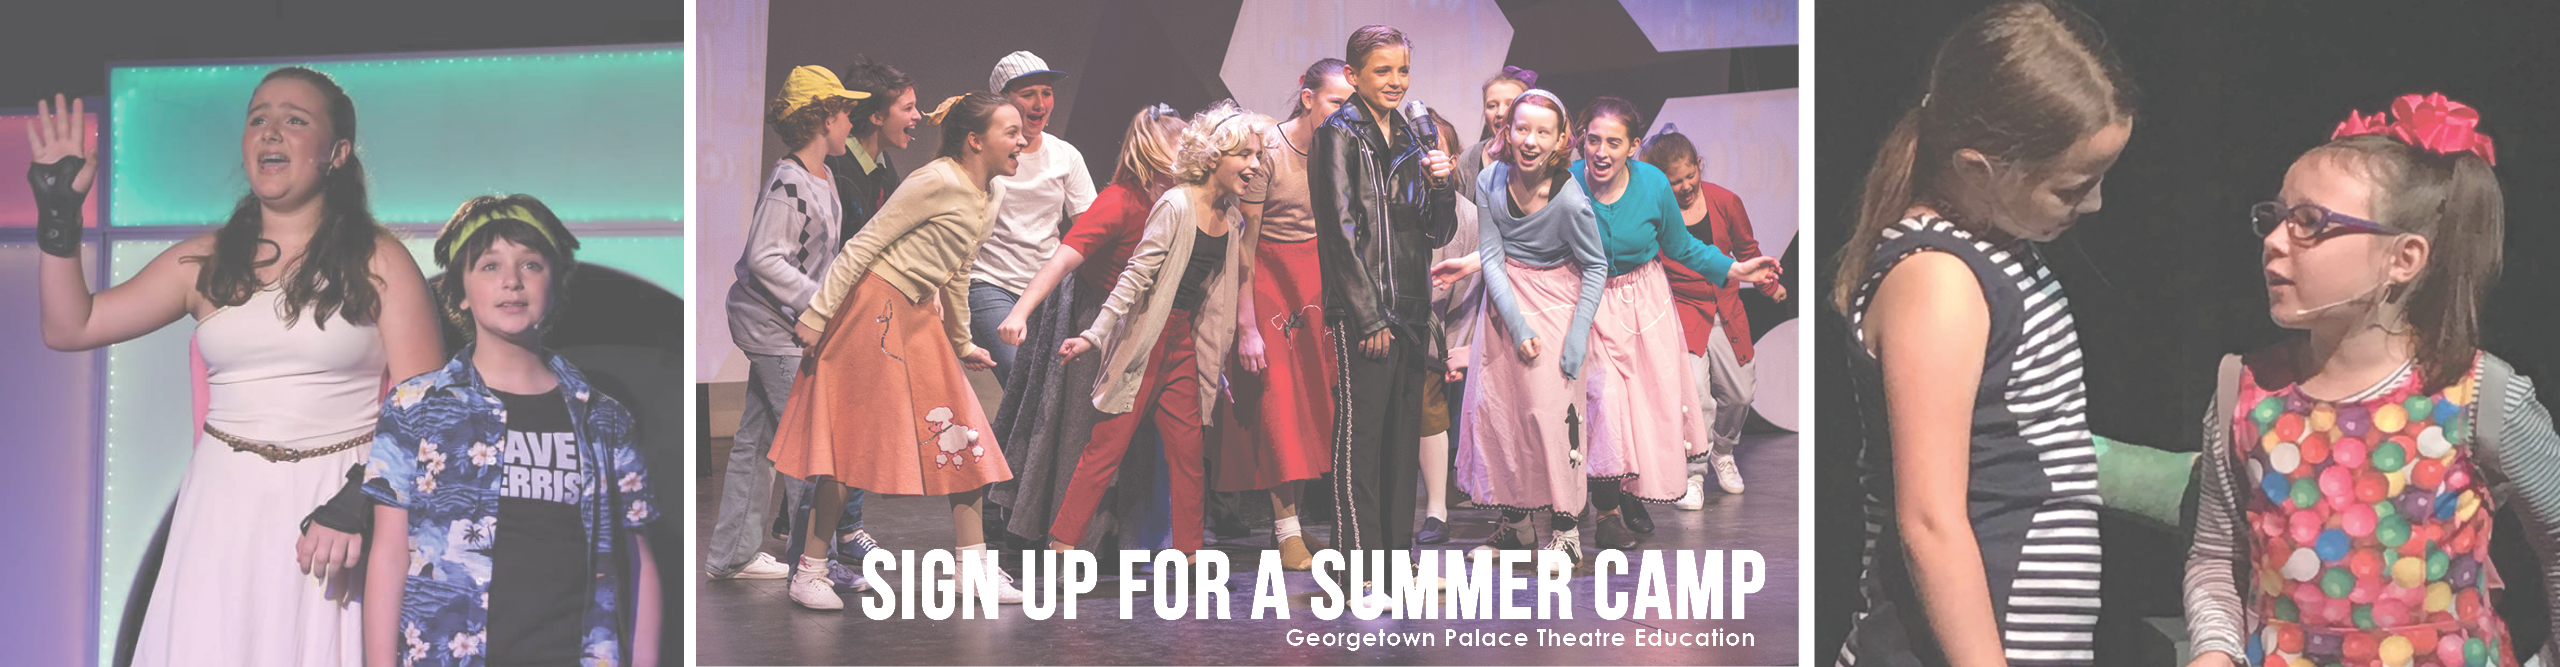 austin summer camps, theater summer camps